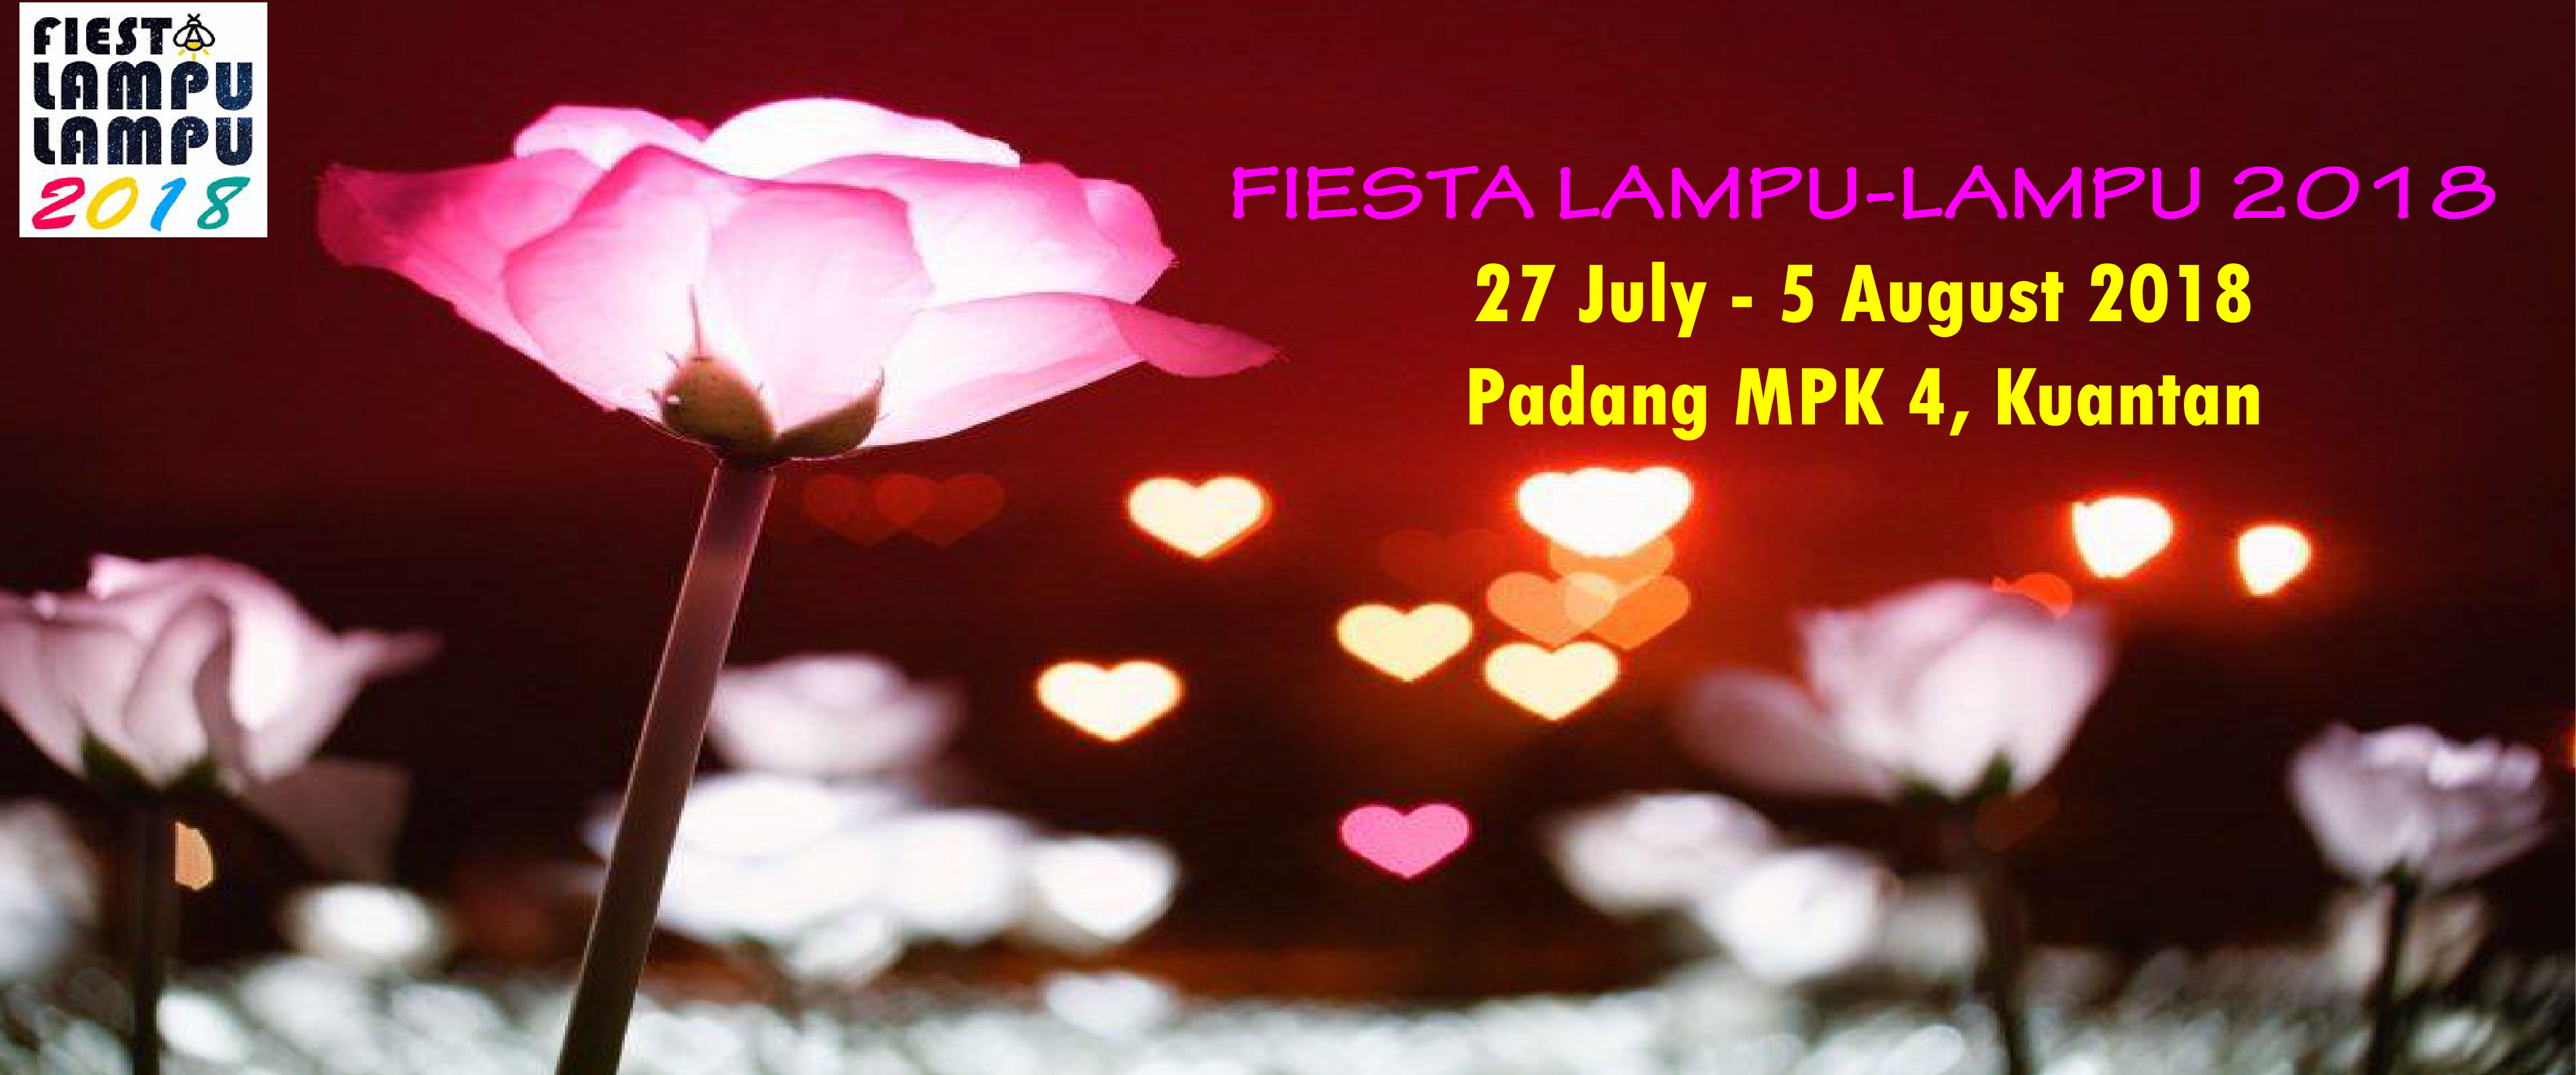 FIESTA LAMPU LAMPU : JULY 27- AUGUST 5, 2018